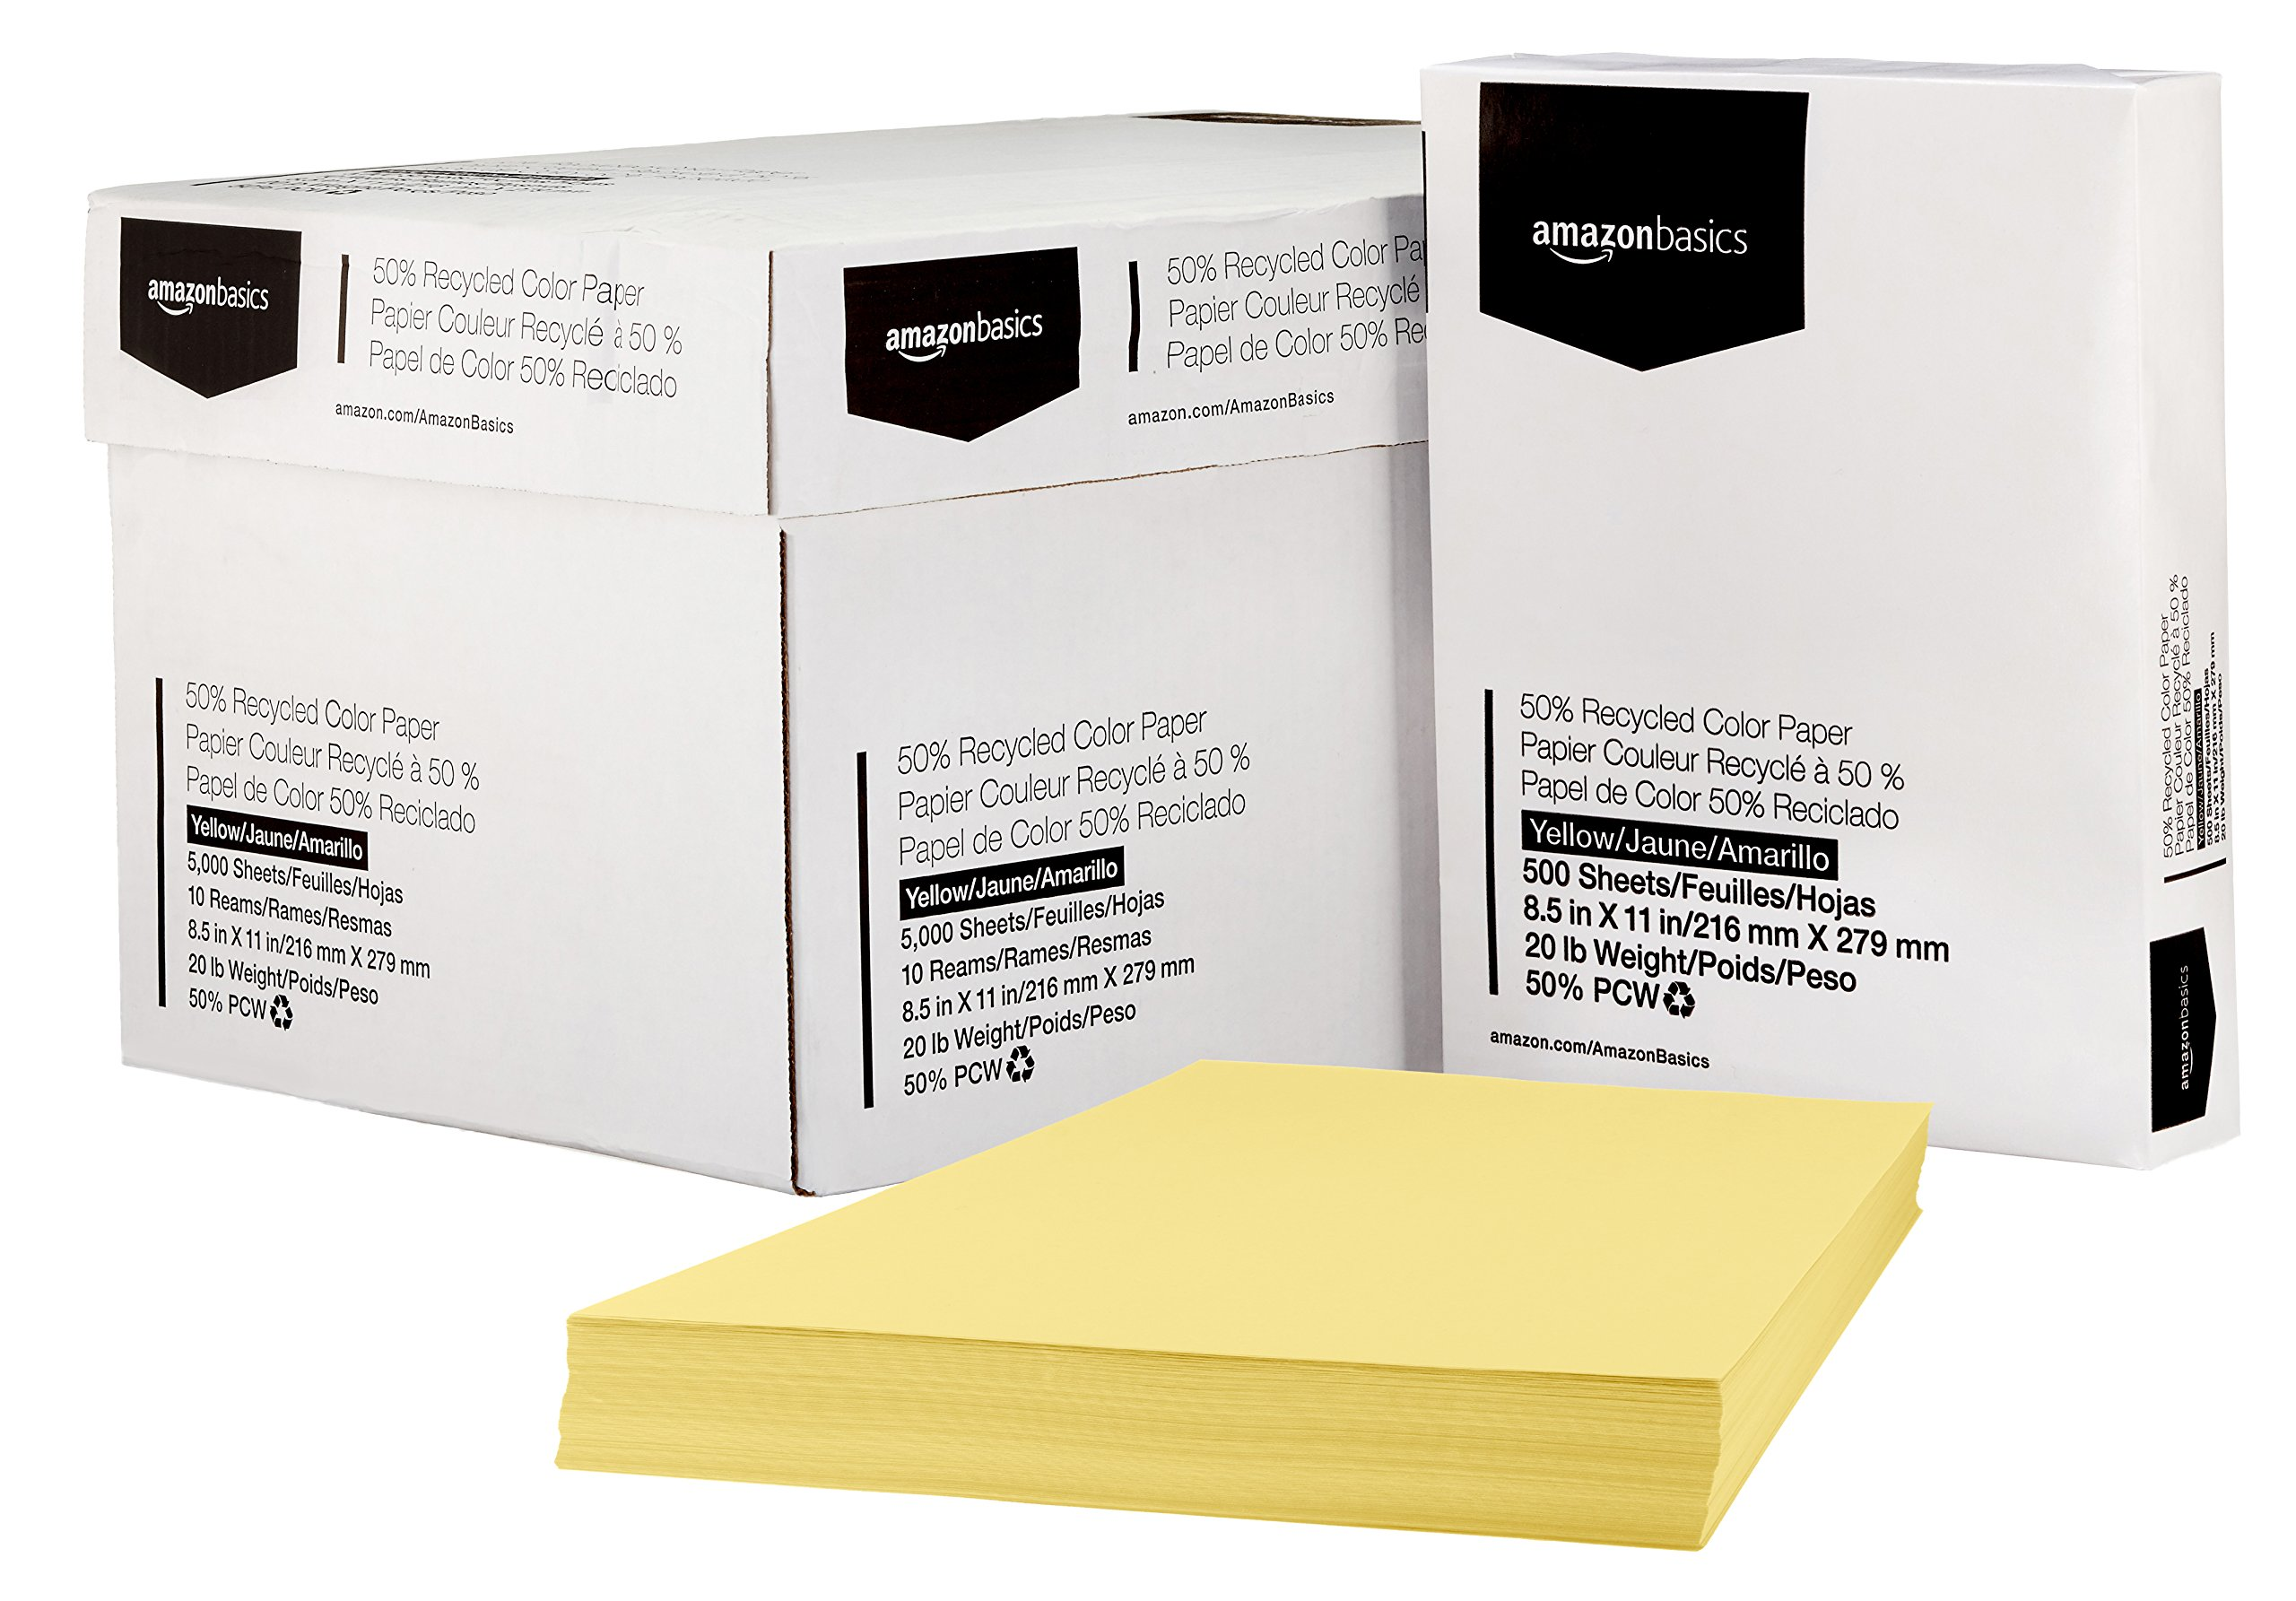 AmazonBasics 50% Recycled Color Paper - Yellow, 8.5 x 11 Inches, 20 lbs, 10 Ream Case (5,000 Sheets)